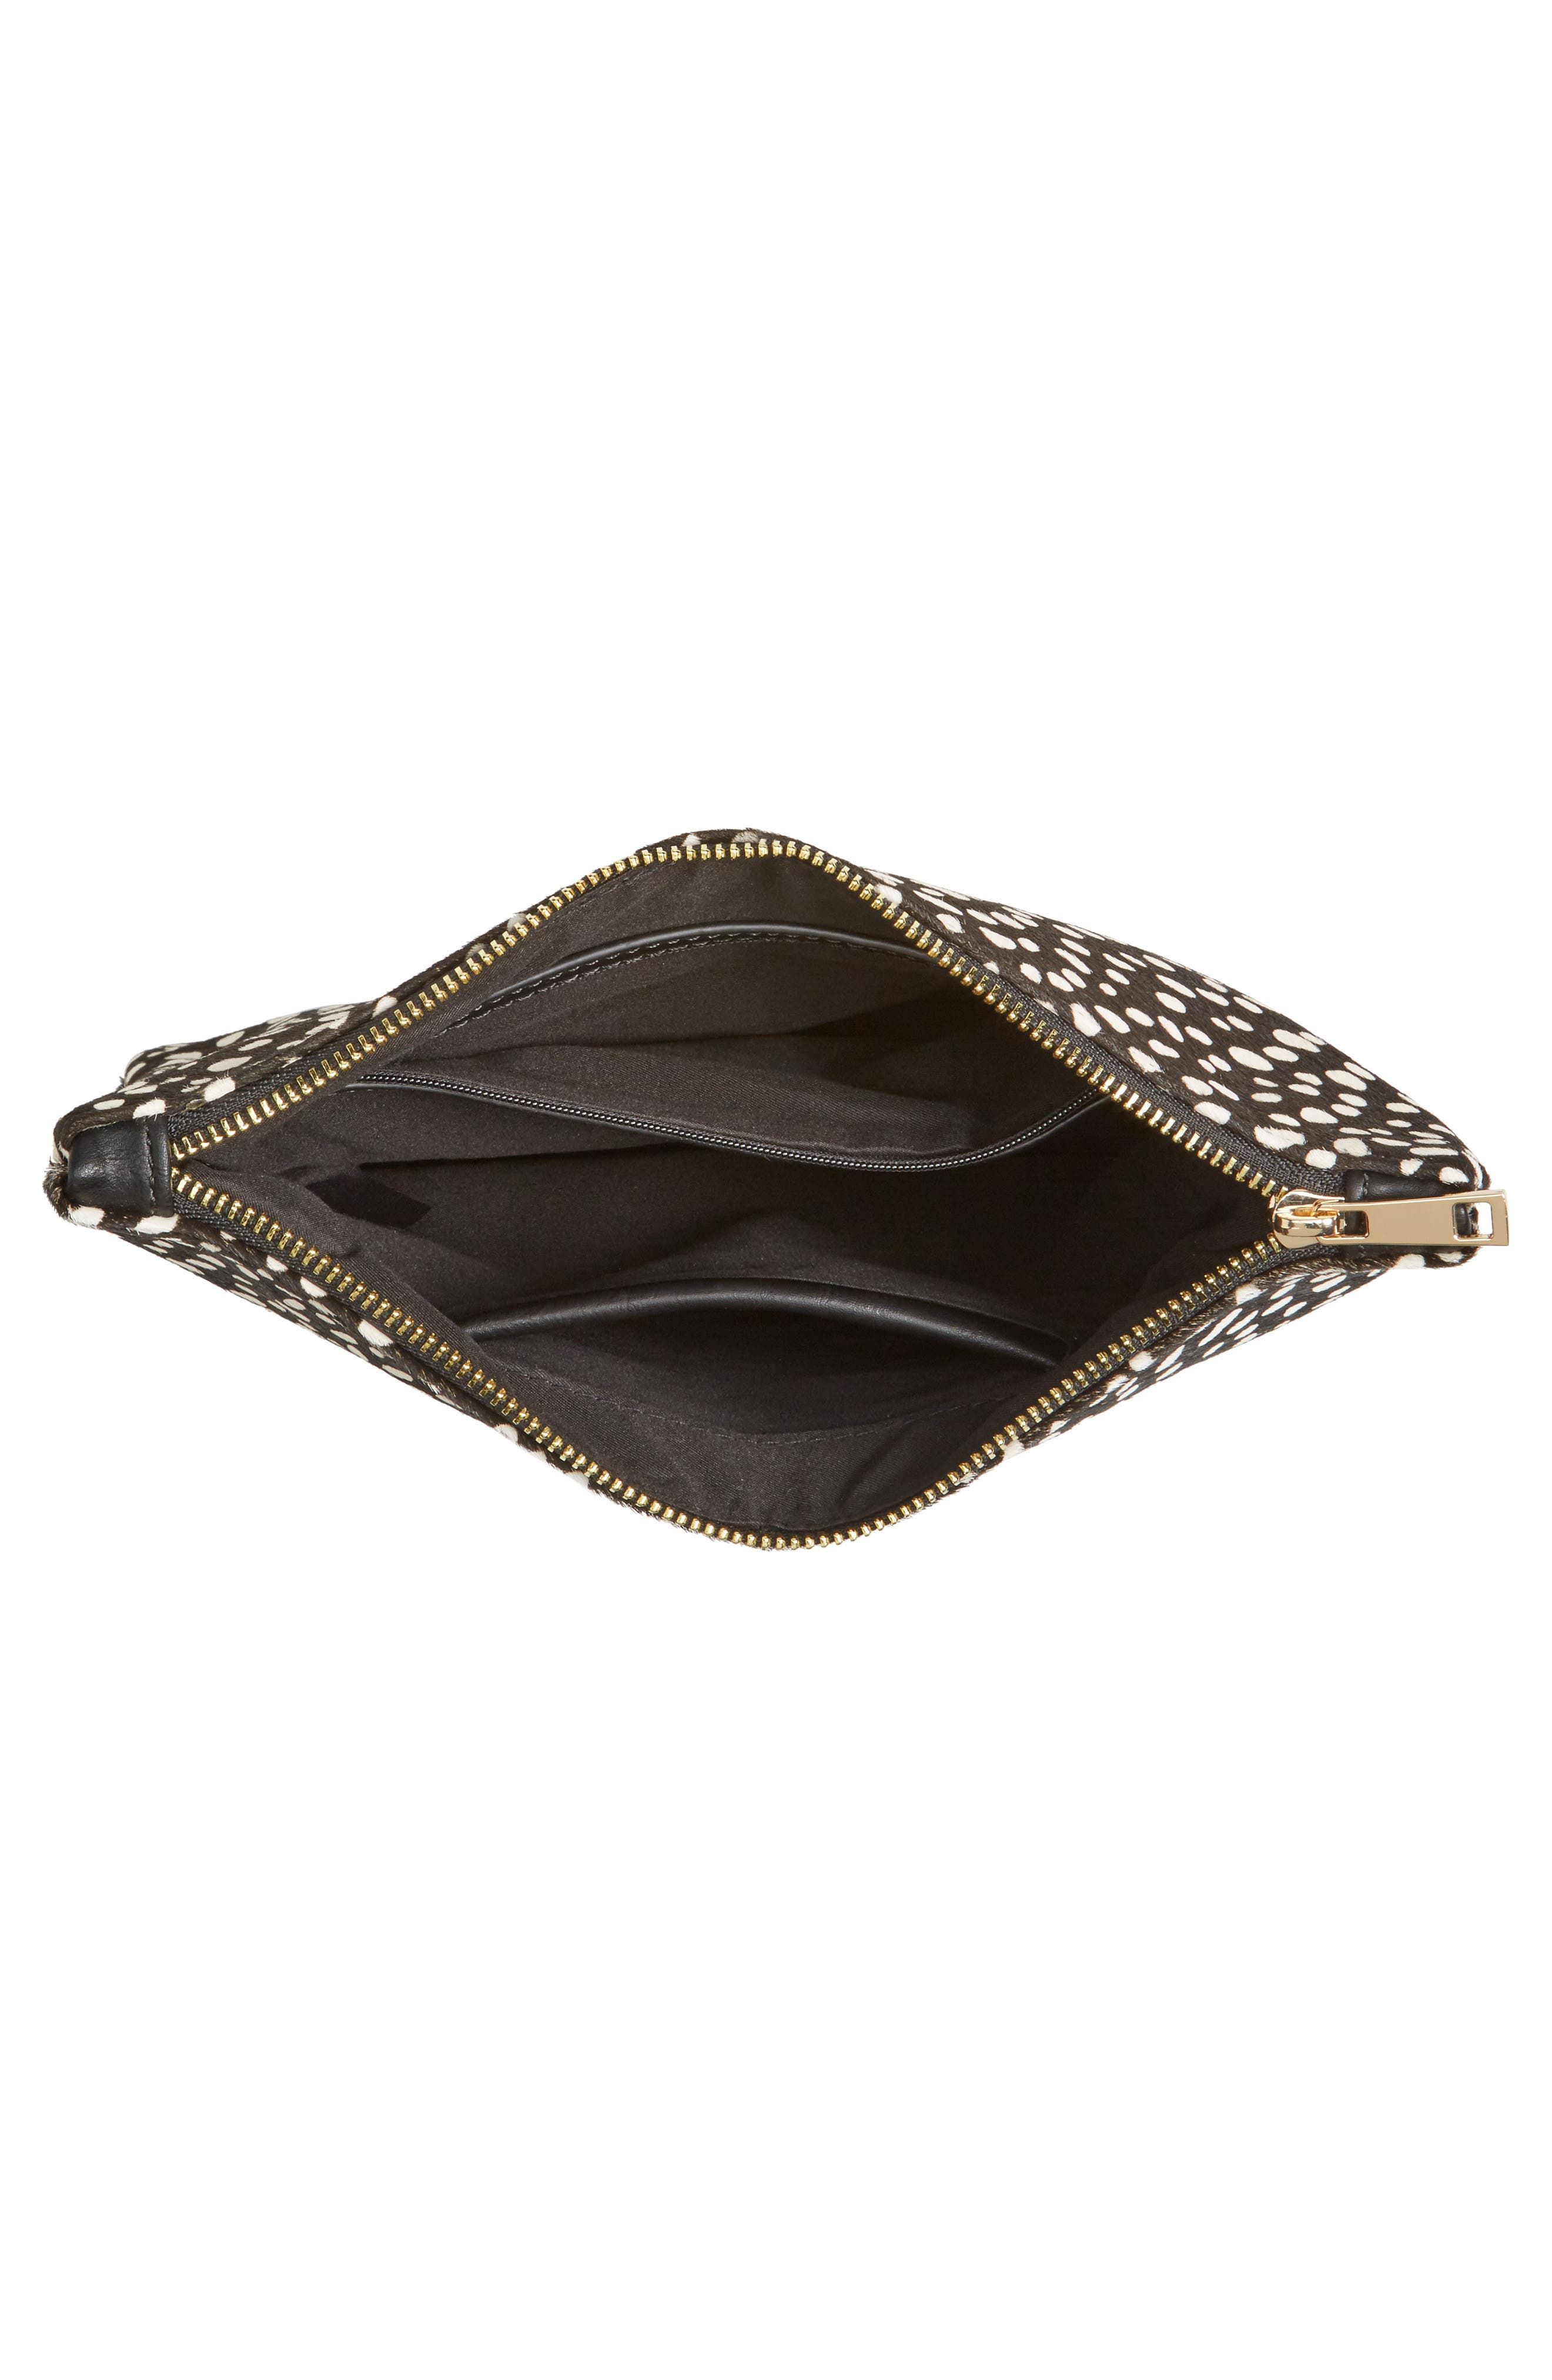 SOLE SOCIETY, 'Dolce' Genuine Calf Hair Clutch, Alternate thumbnail 4, color, 001